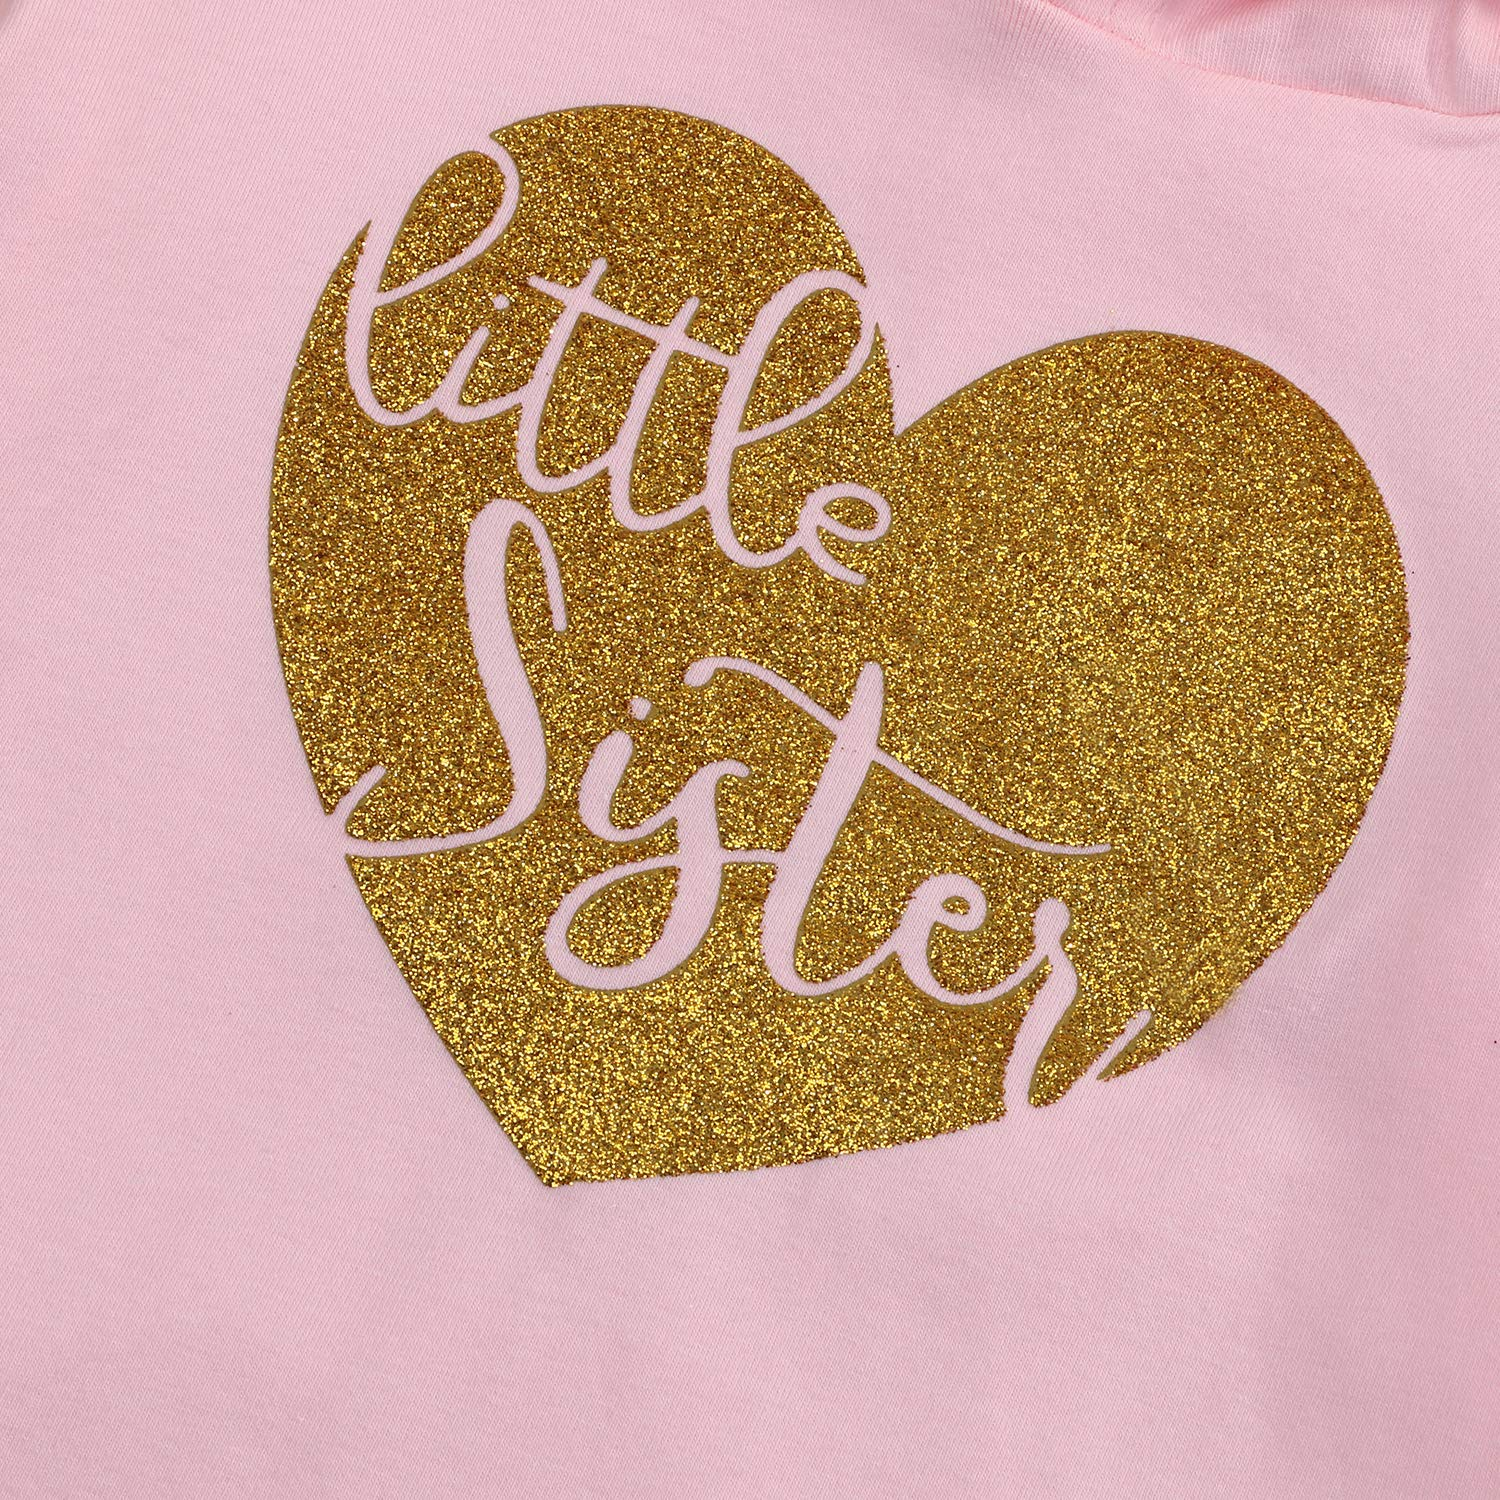 YOUNGER TREE Infant Baby Toddler Girls Hoodie Little Sister Matching Big Sister Hooded Top Sweatshirt Long Sleeve Shirt